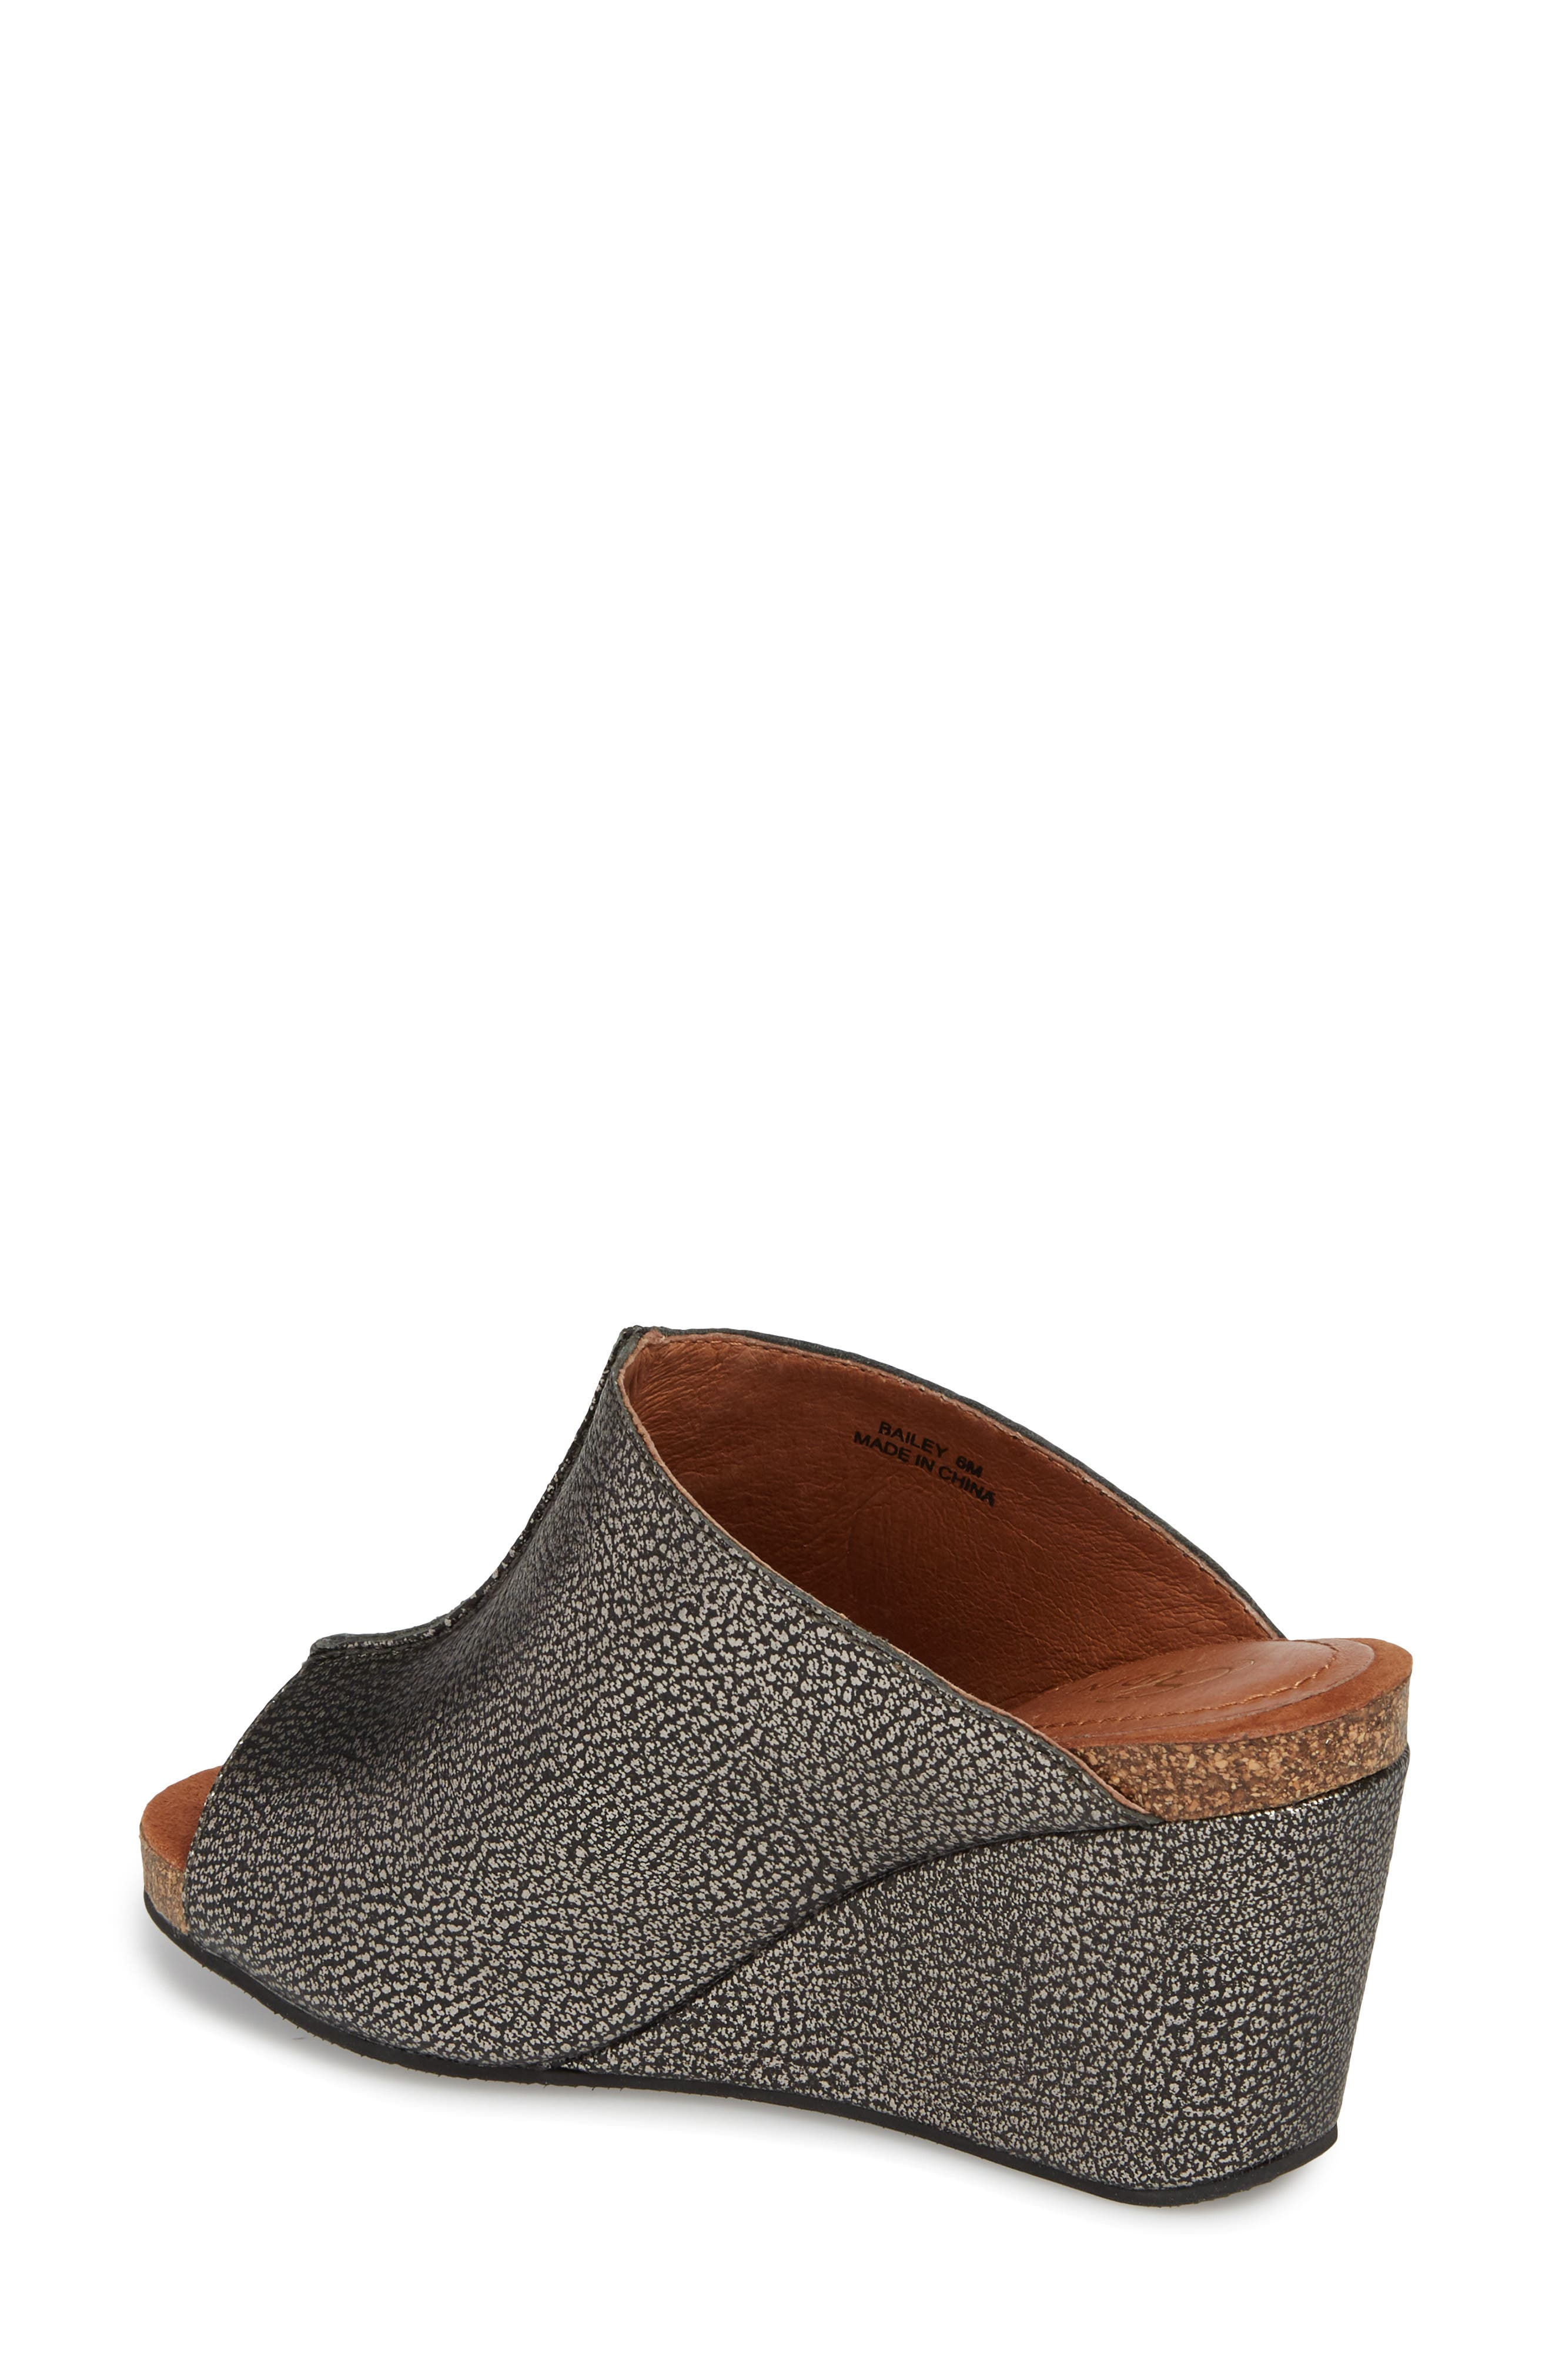 'Bailey' Suede Wedge,                             Alternate thumbnail 2, color,                             Pewter Leather